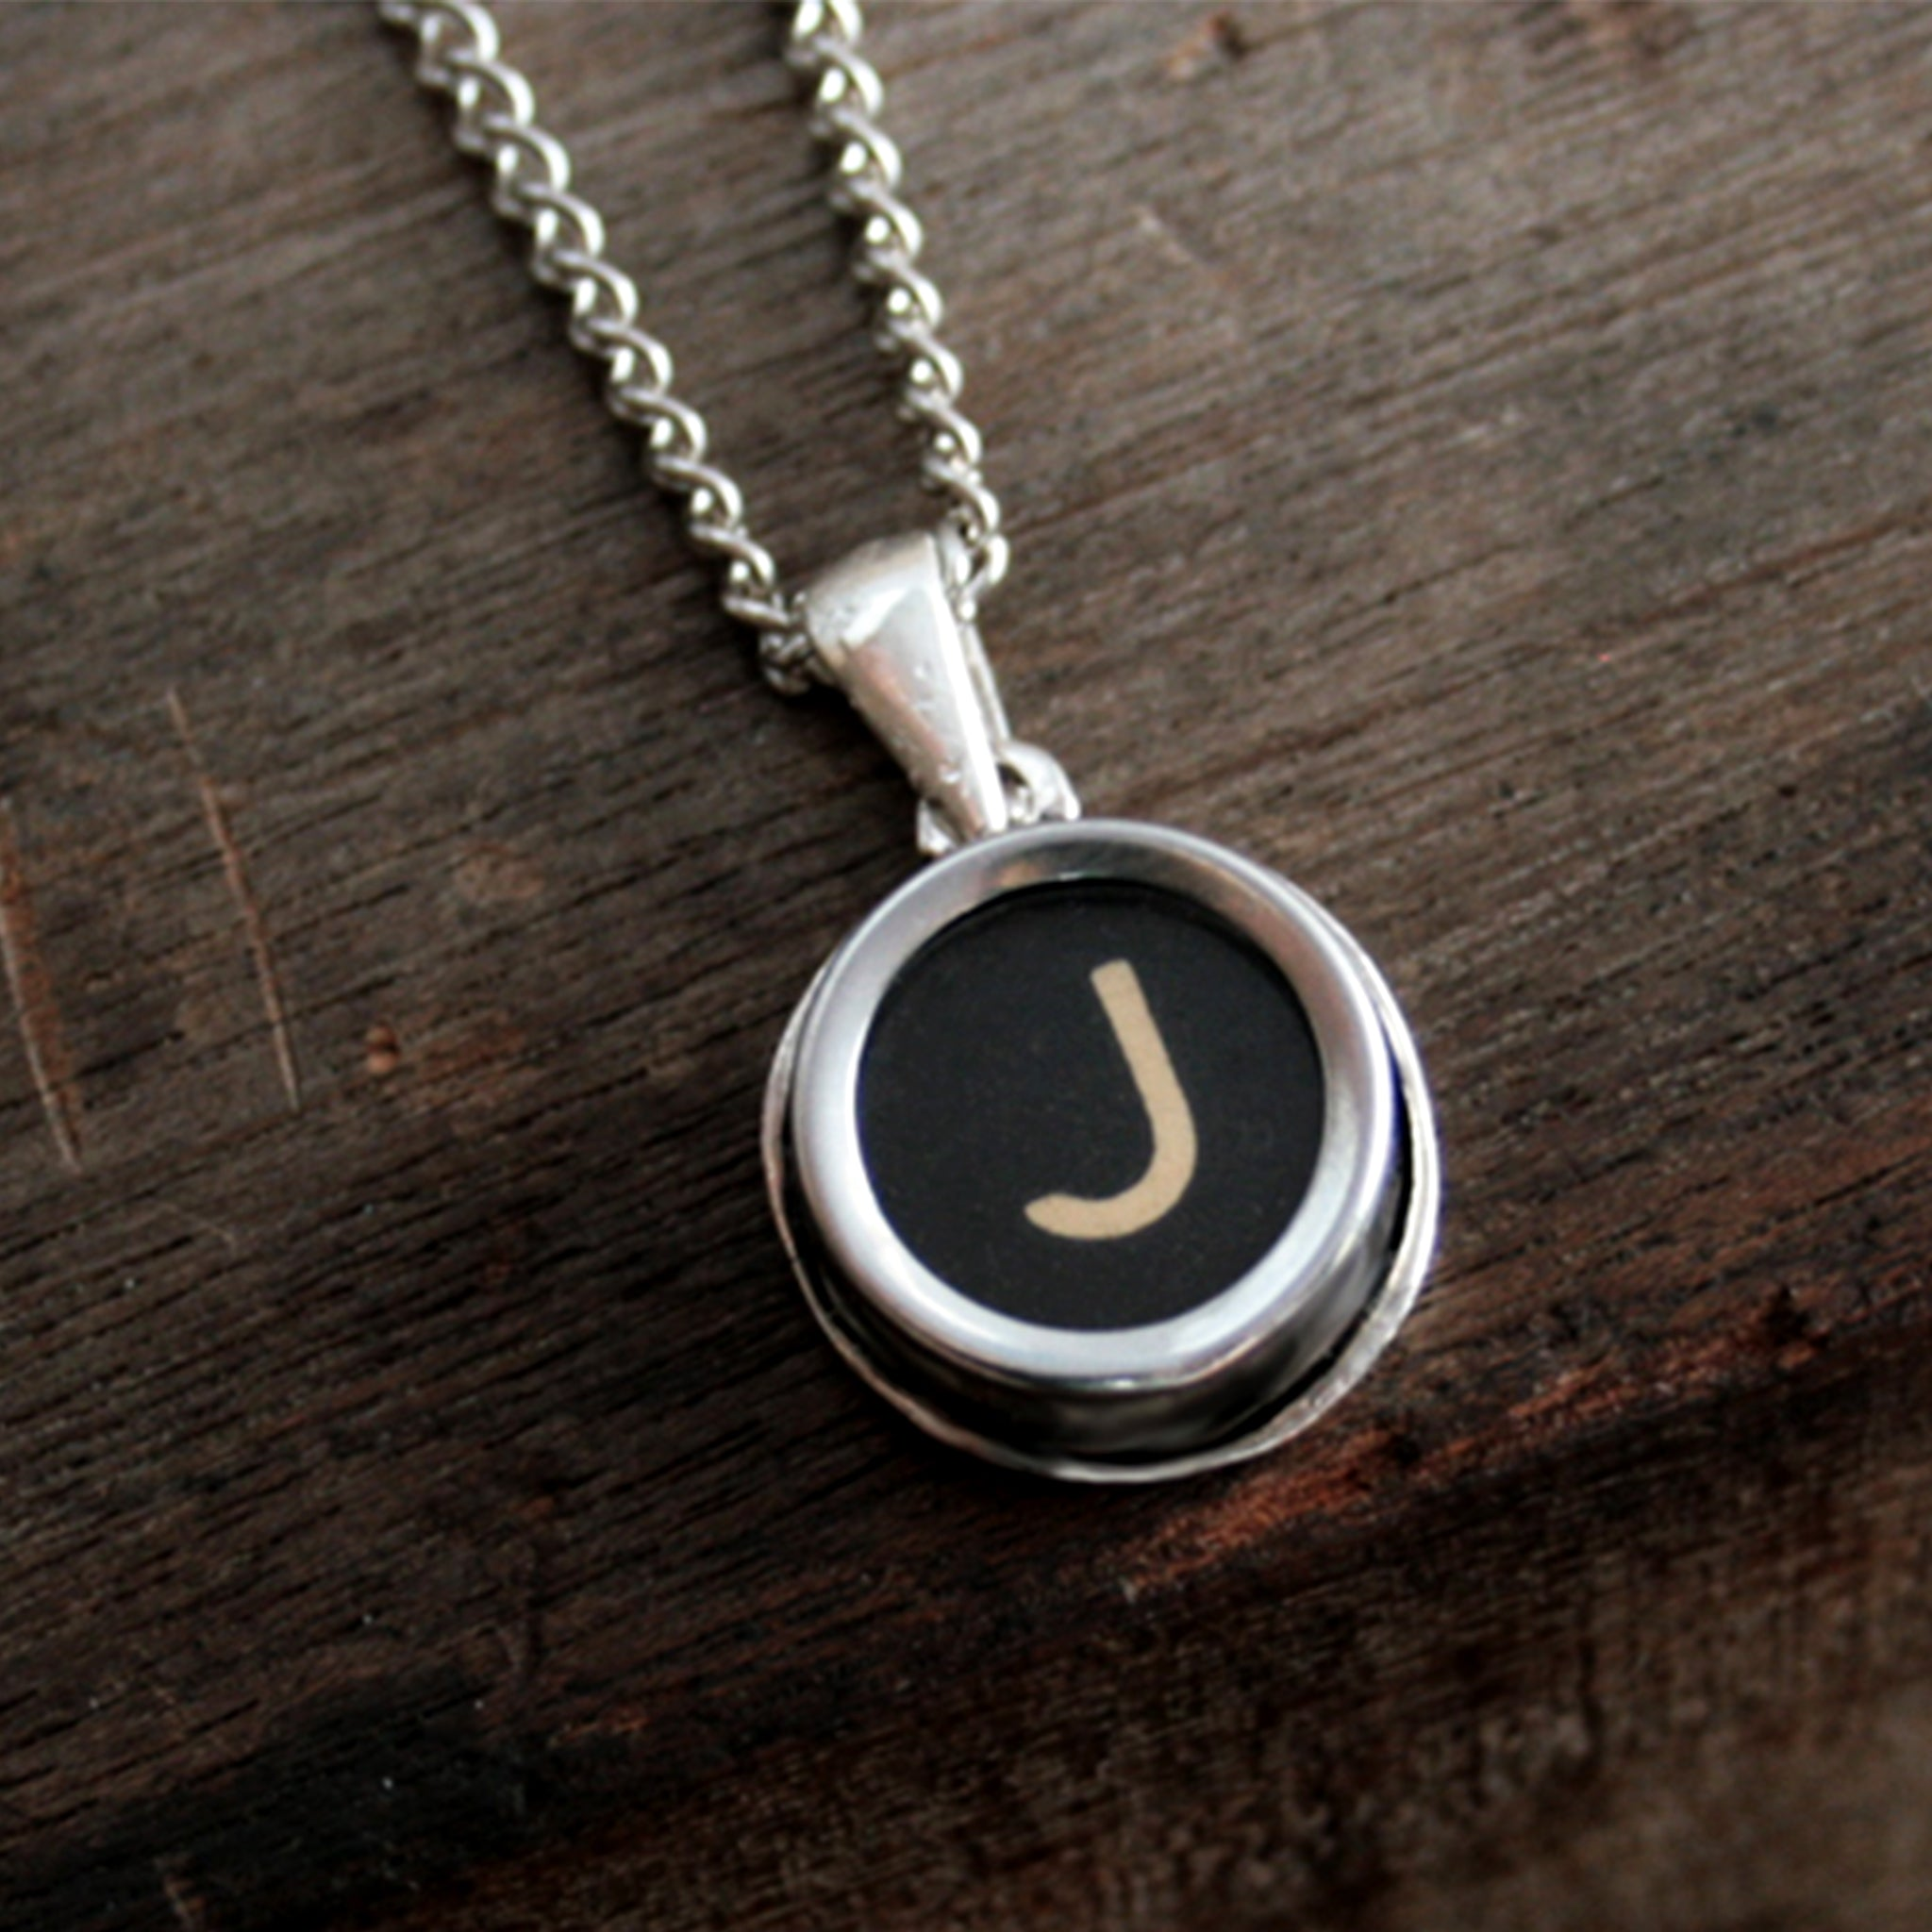 J initial necklace made of authentic vintage black typewriter key